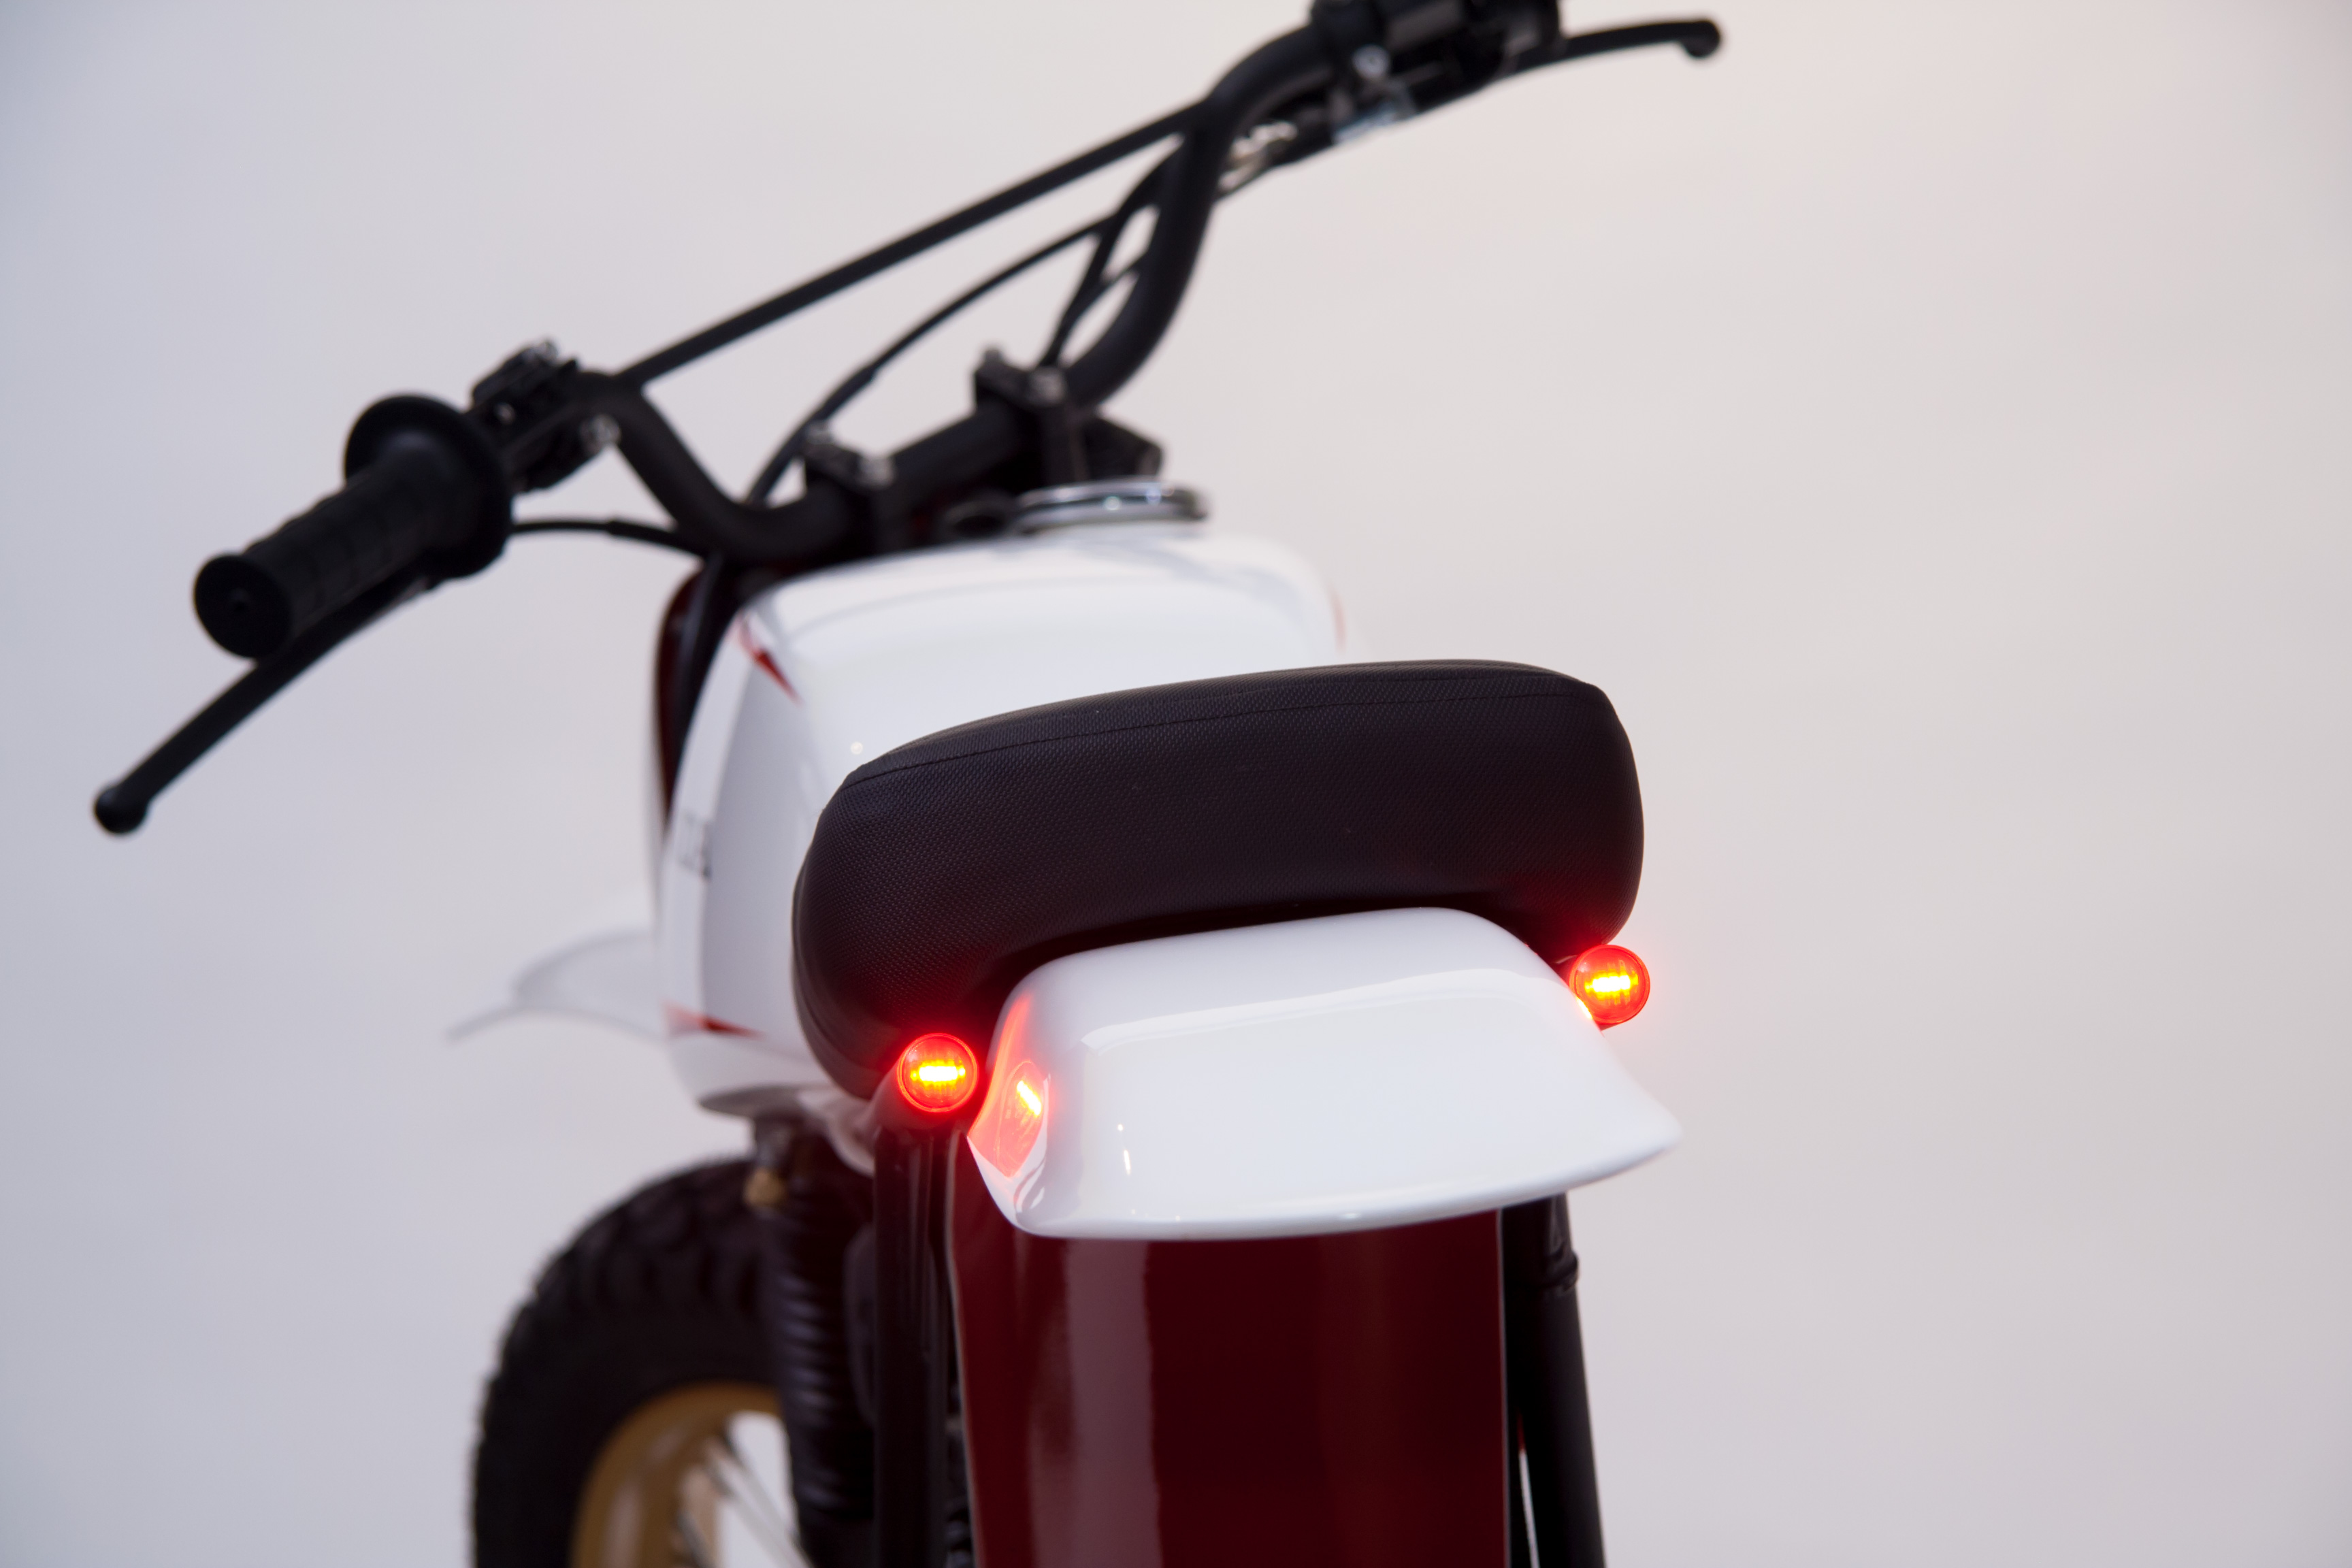 Honda SL125 LED brake lights in subframe tubing